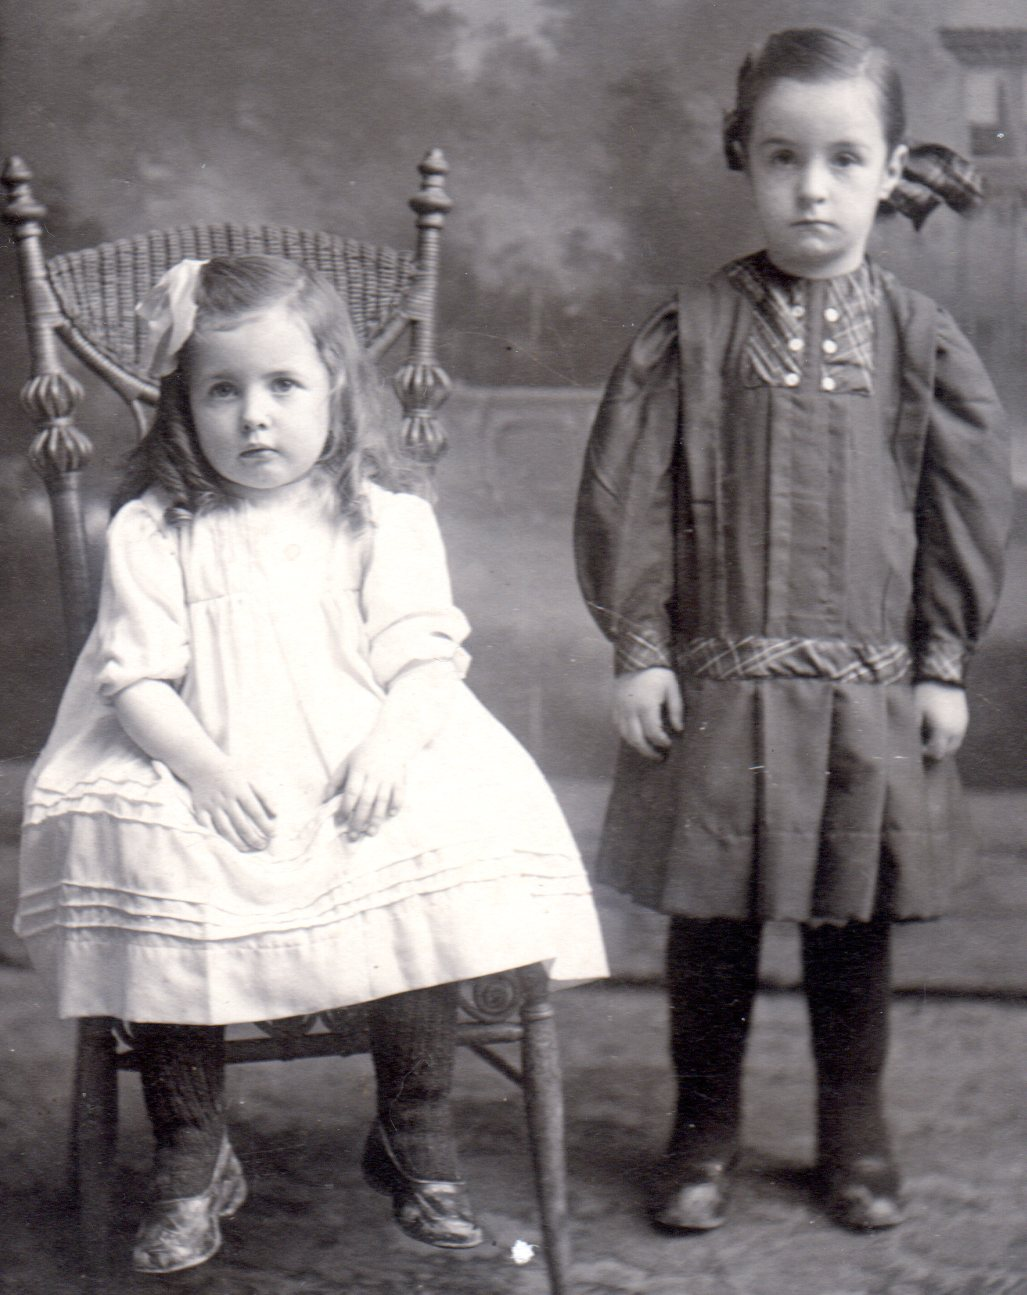 Youngest in Michael Gallagher/Margaret Connors family - Helen Gertrude Gallagher (Mrs. Frank McKinnon ) & Myrtle Bridget Gallagher (Mrs. Donald McCormick).